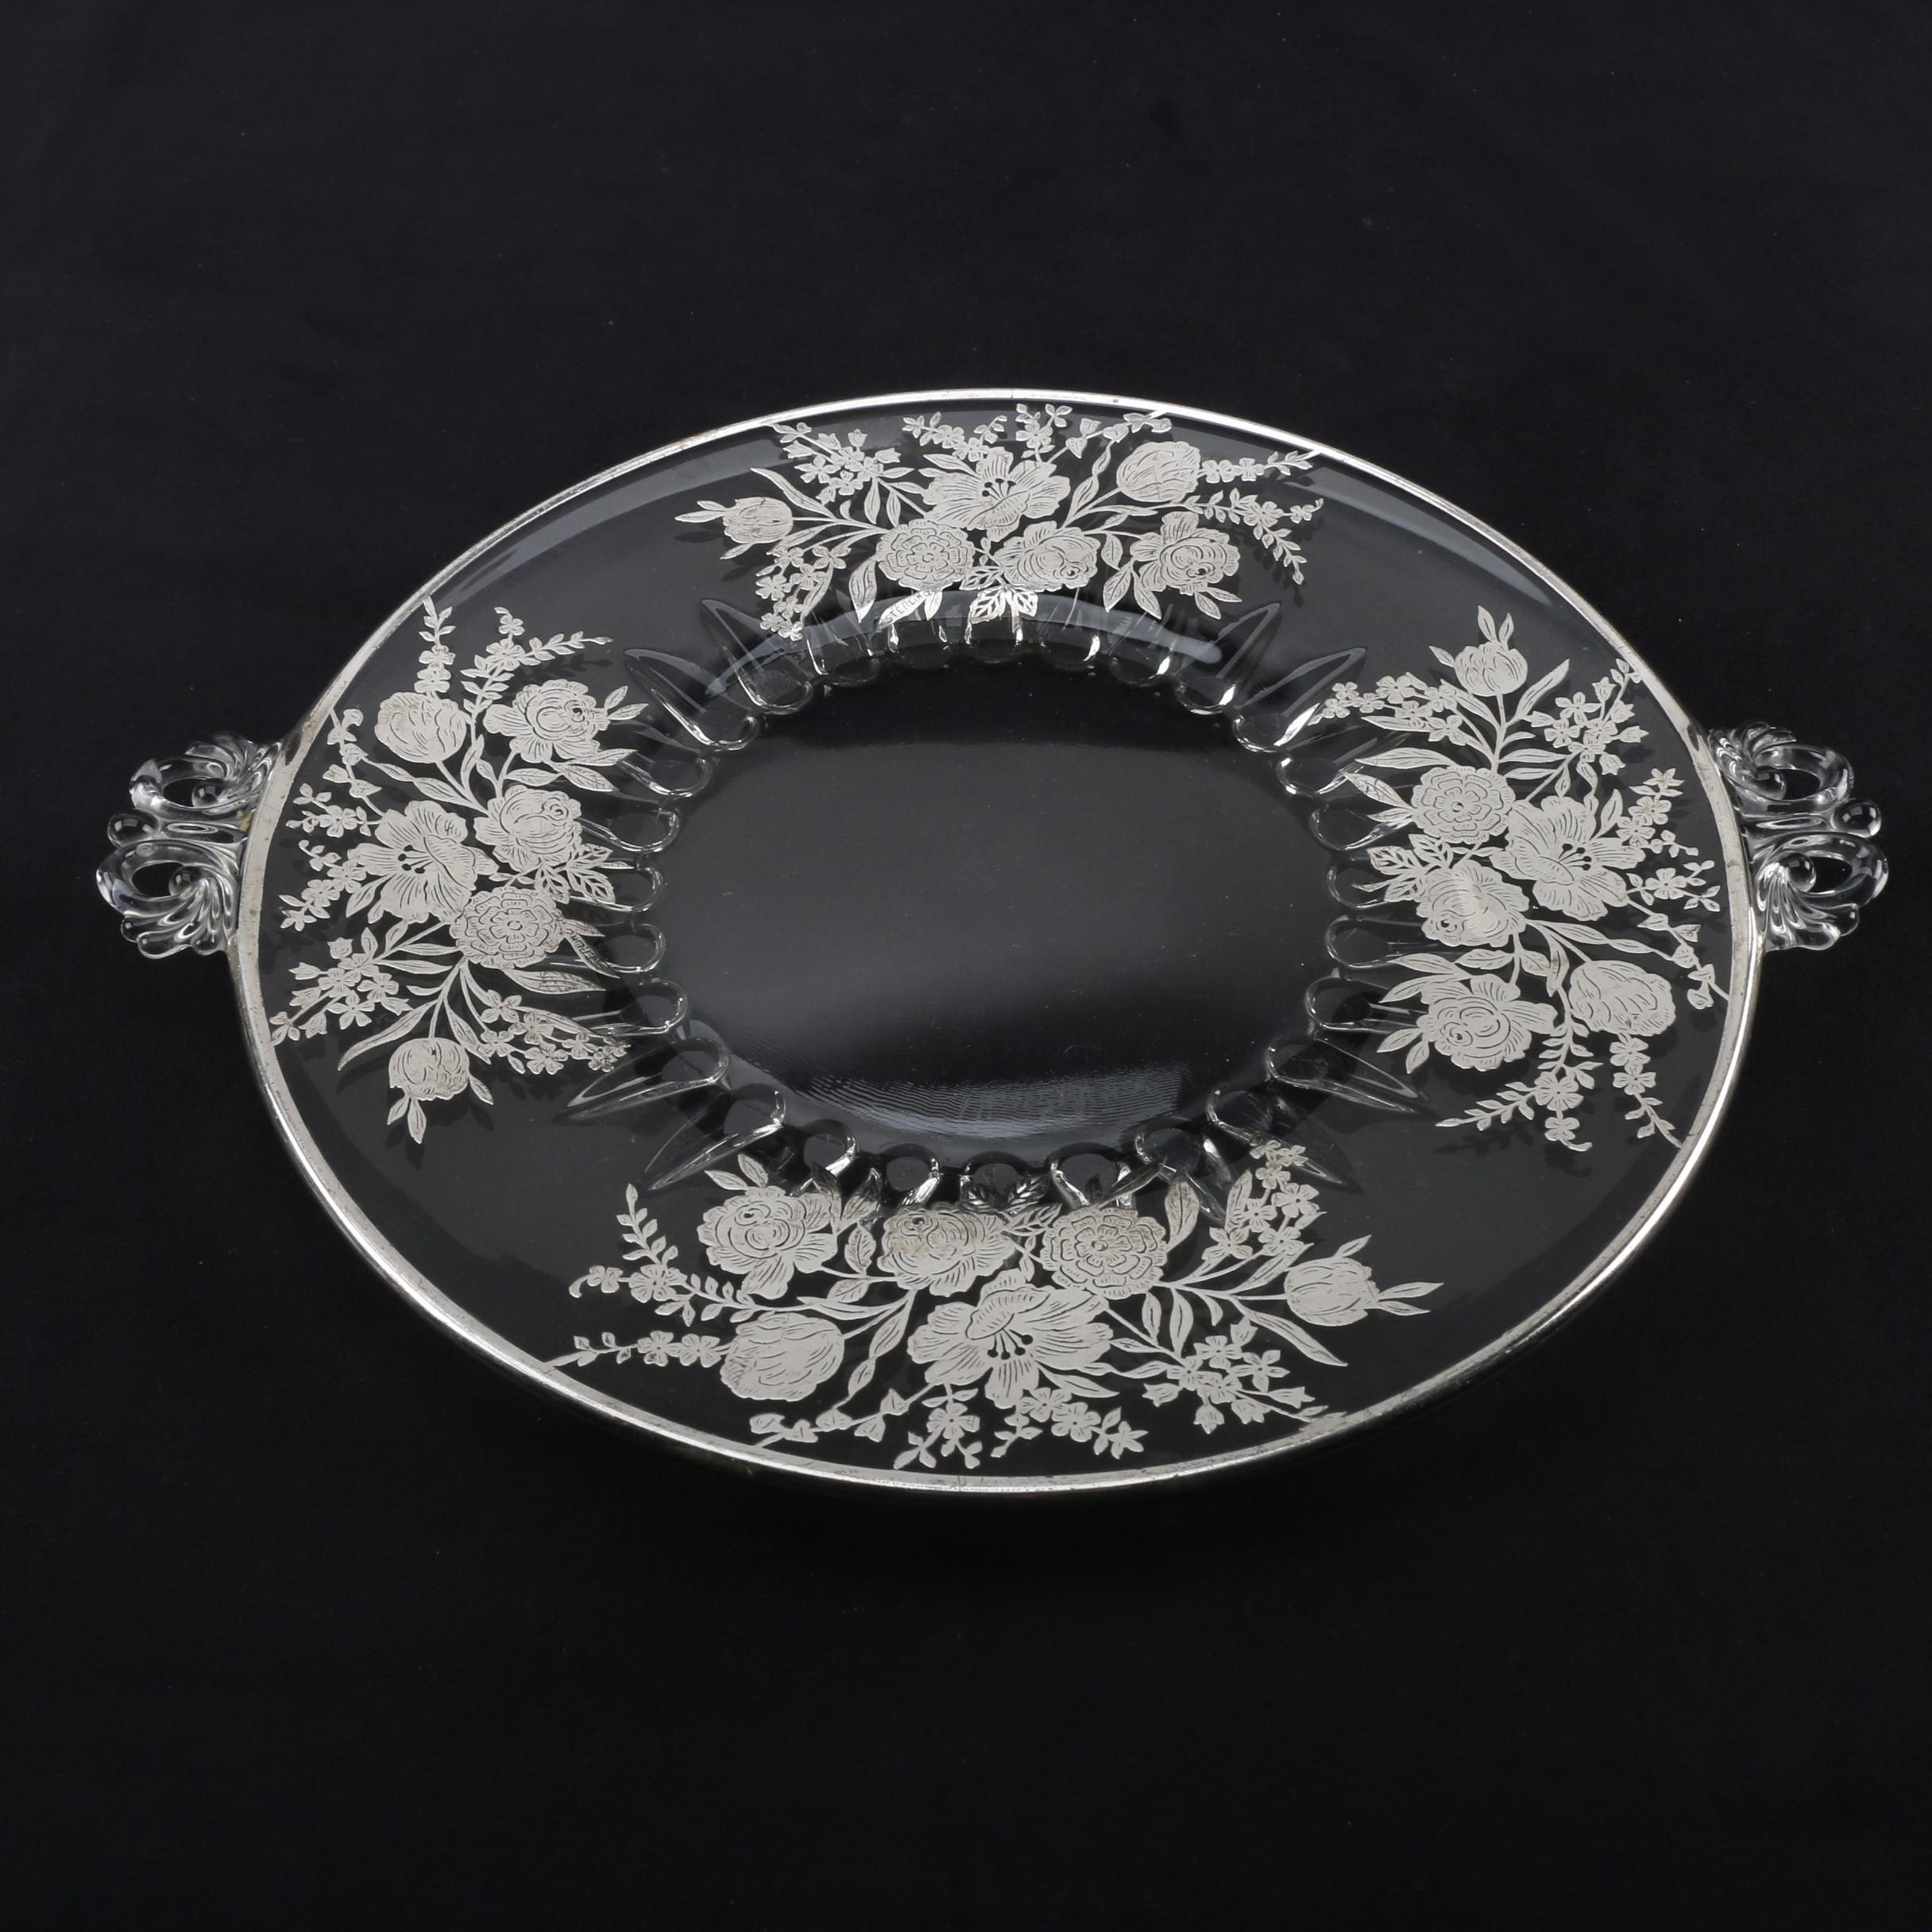 Sterling Silver Overlaid Glass Dessert Tray, Early 20th Century